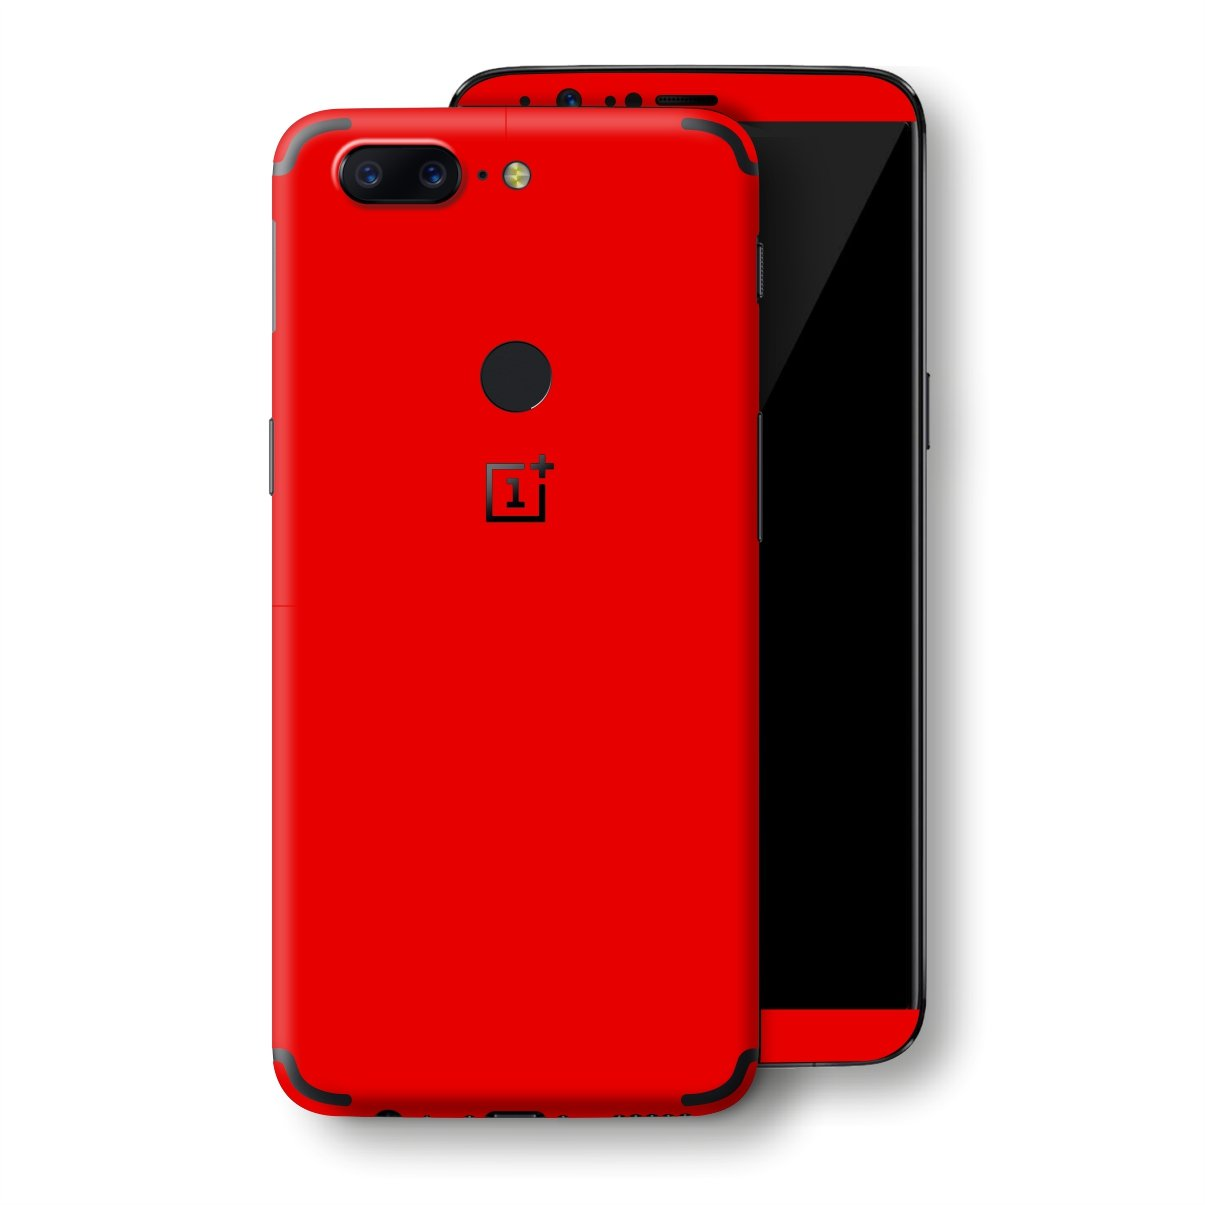 OnePlus 5T Bright Red Glossy Gloss Finish Skin, Decal, Wrap, Protector, Cover by EasySkinz | EasySkinz.com